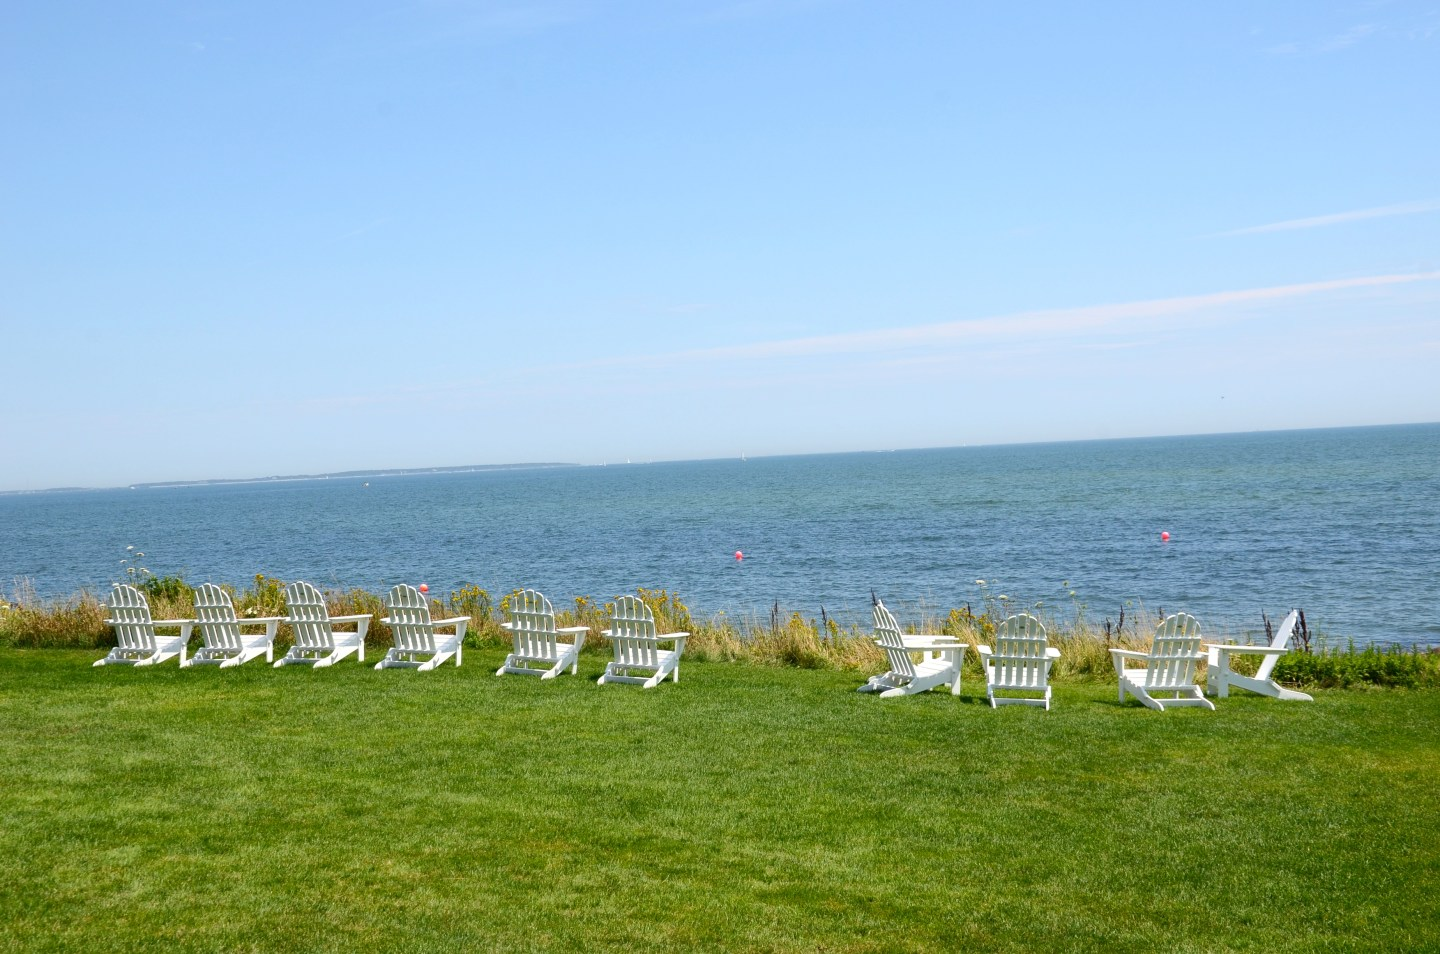 Overlooking the ocean in Osterville, MA.